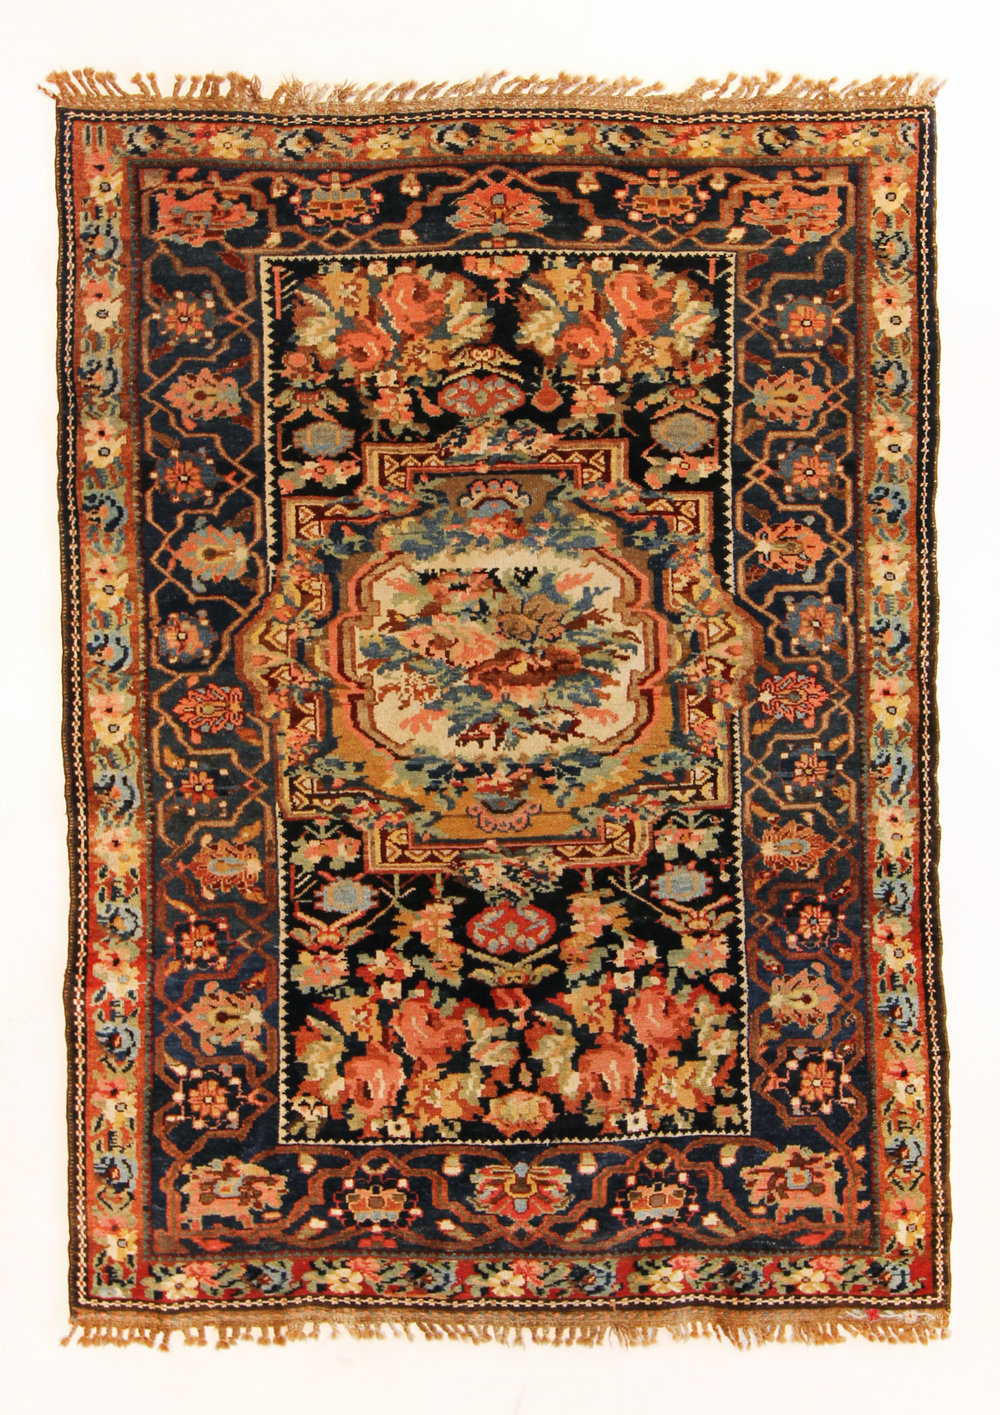 67 Armenian Village Carpet, Chahar Mahal, Iran, circa 1895, french influence, 4'8''x6'8''